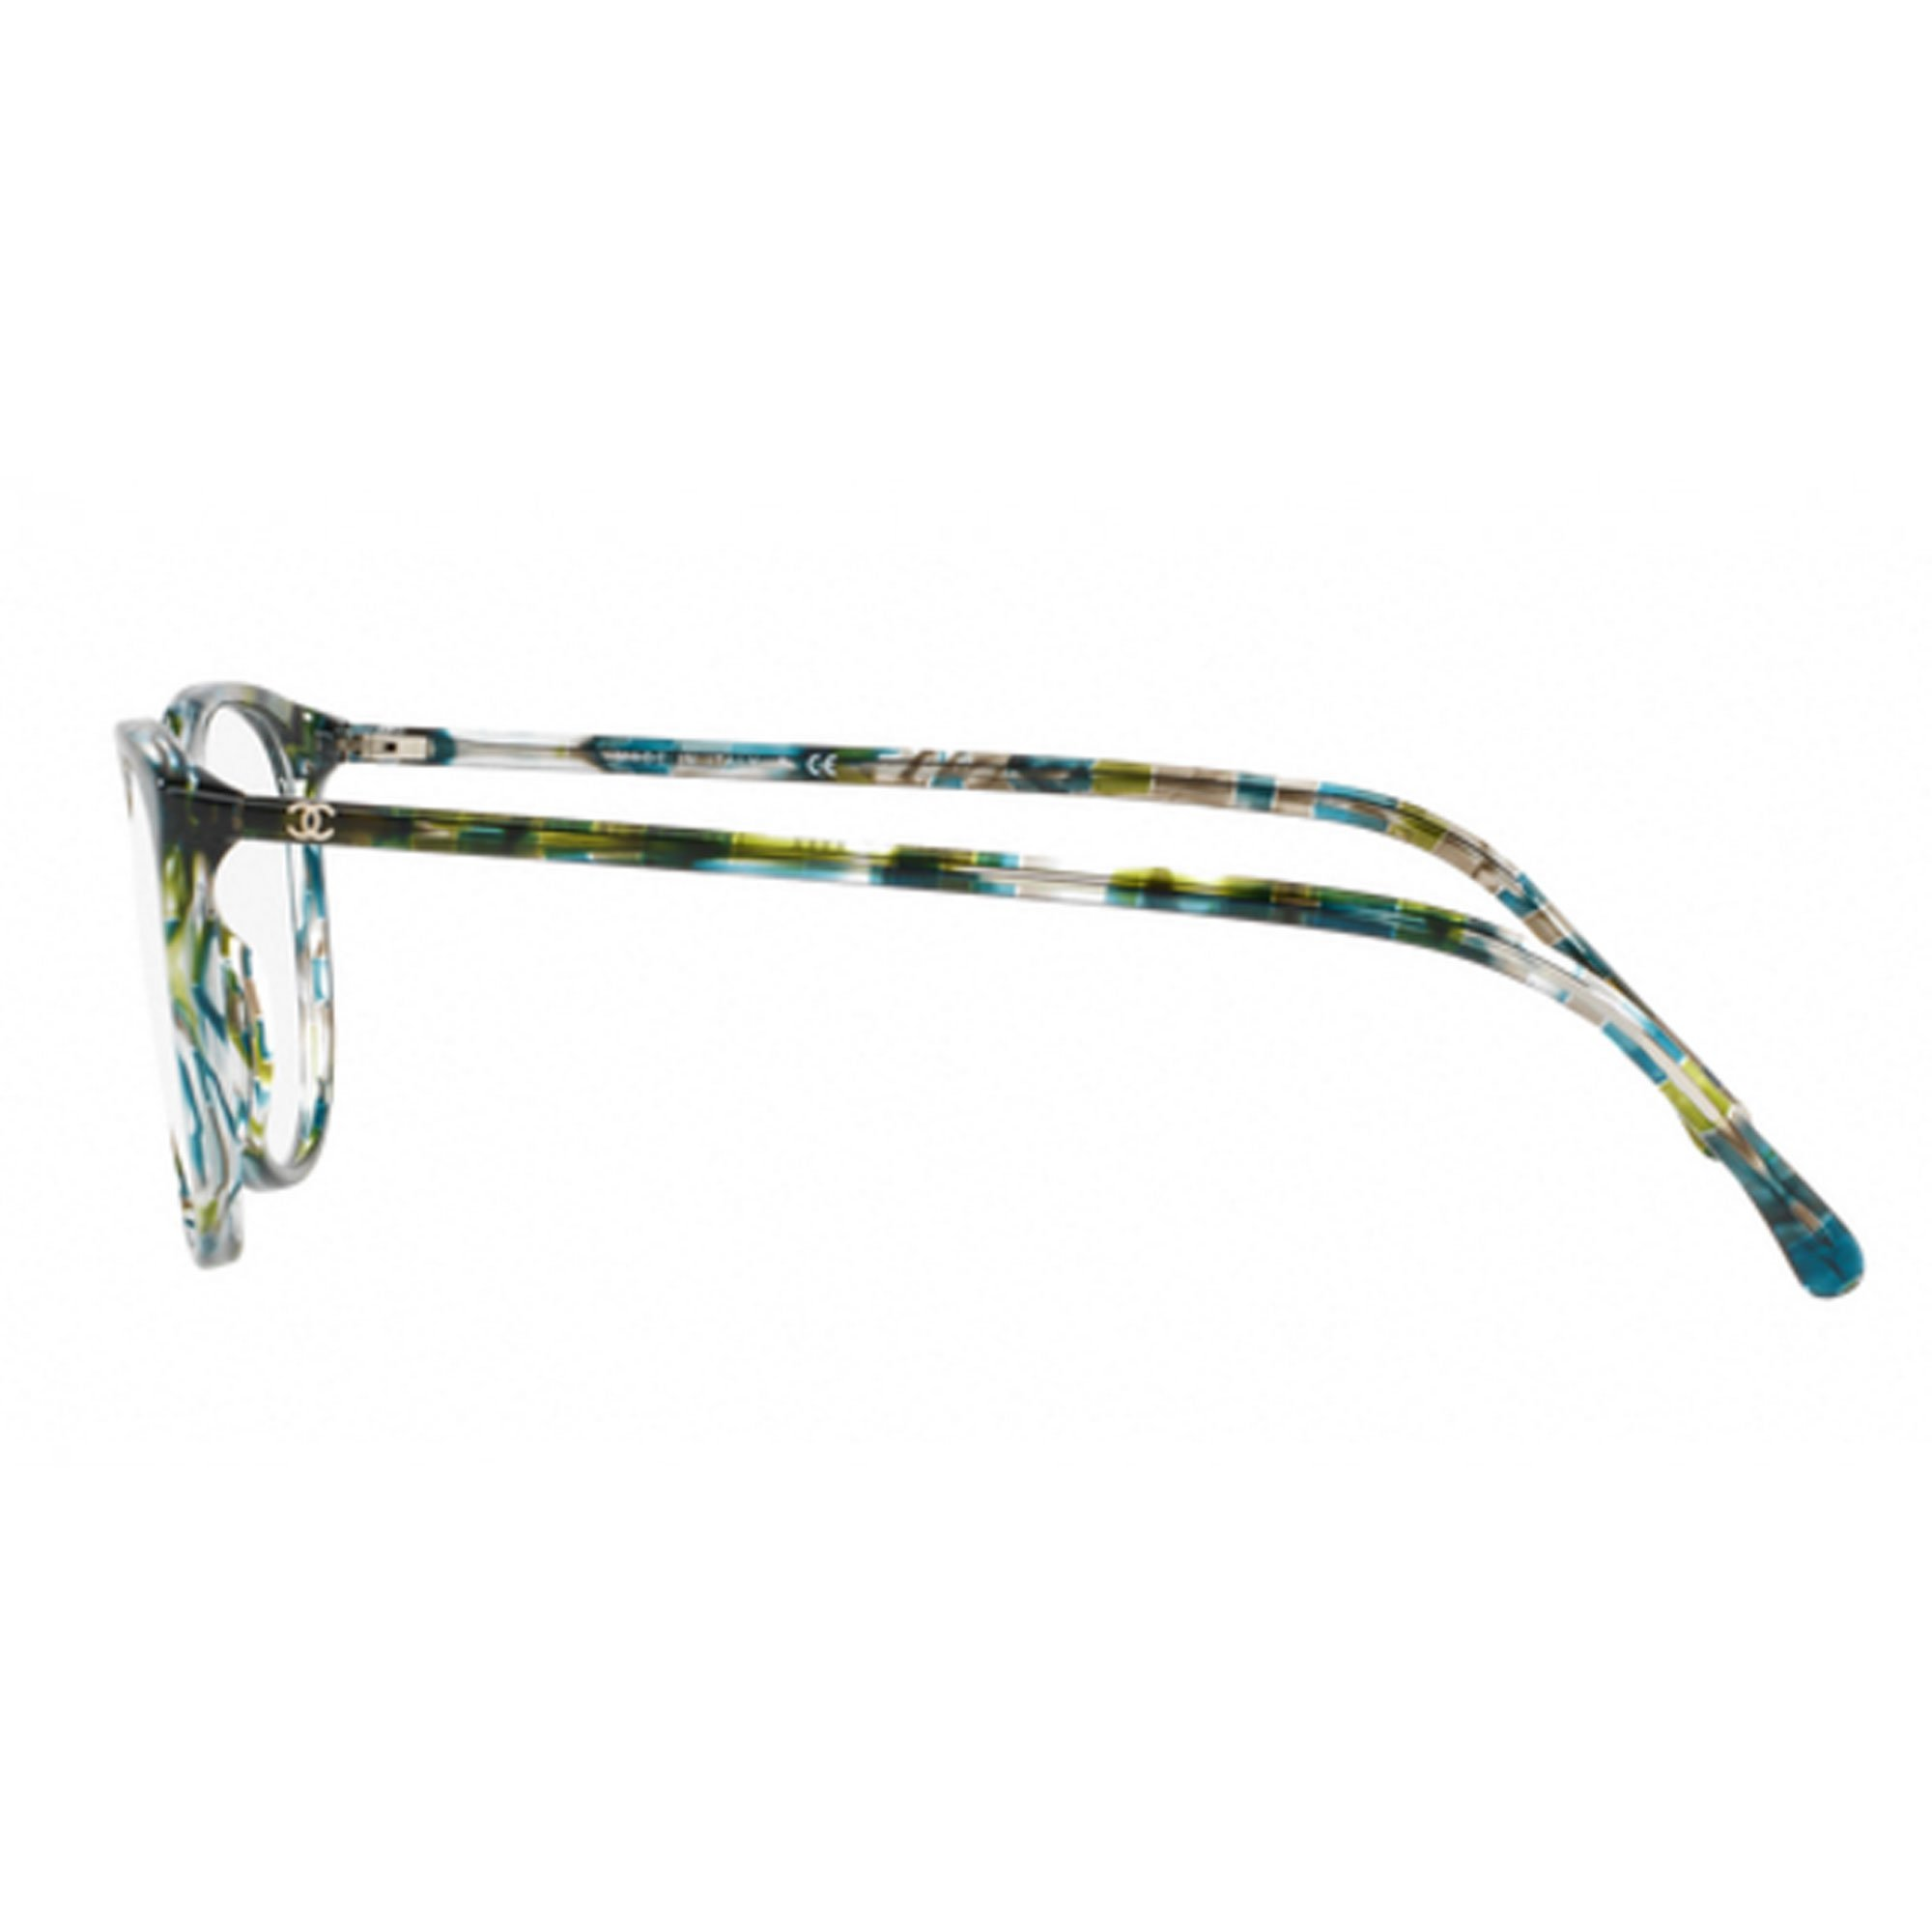 chanel 3282. chanel 3282 1522. occhiali donna vista multi green new color woman eyewear: amazon.co.uk: 8053672591026: books